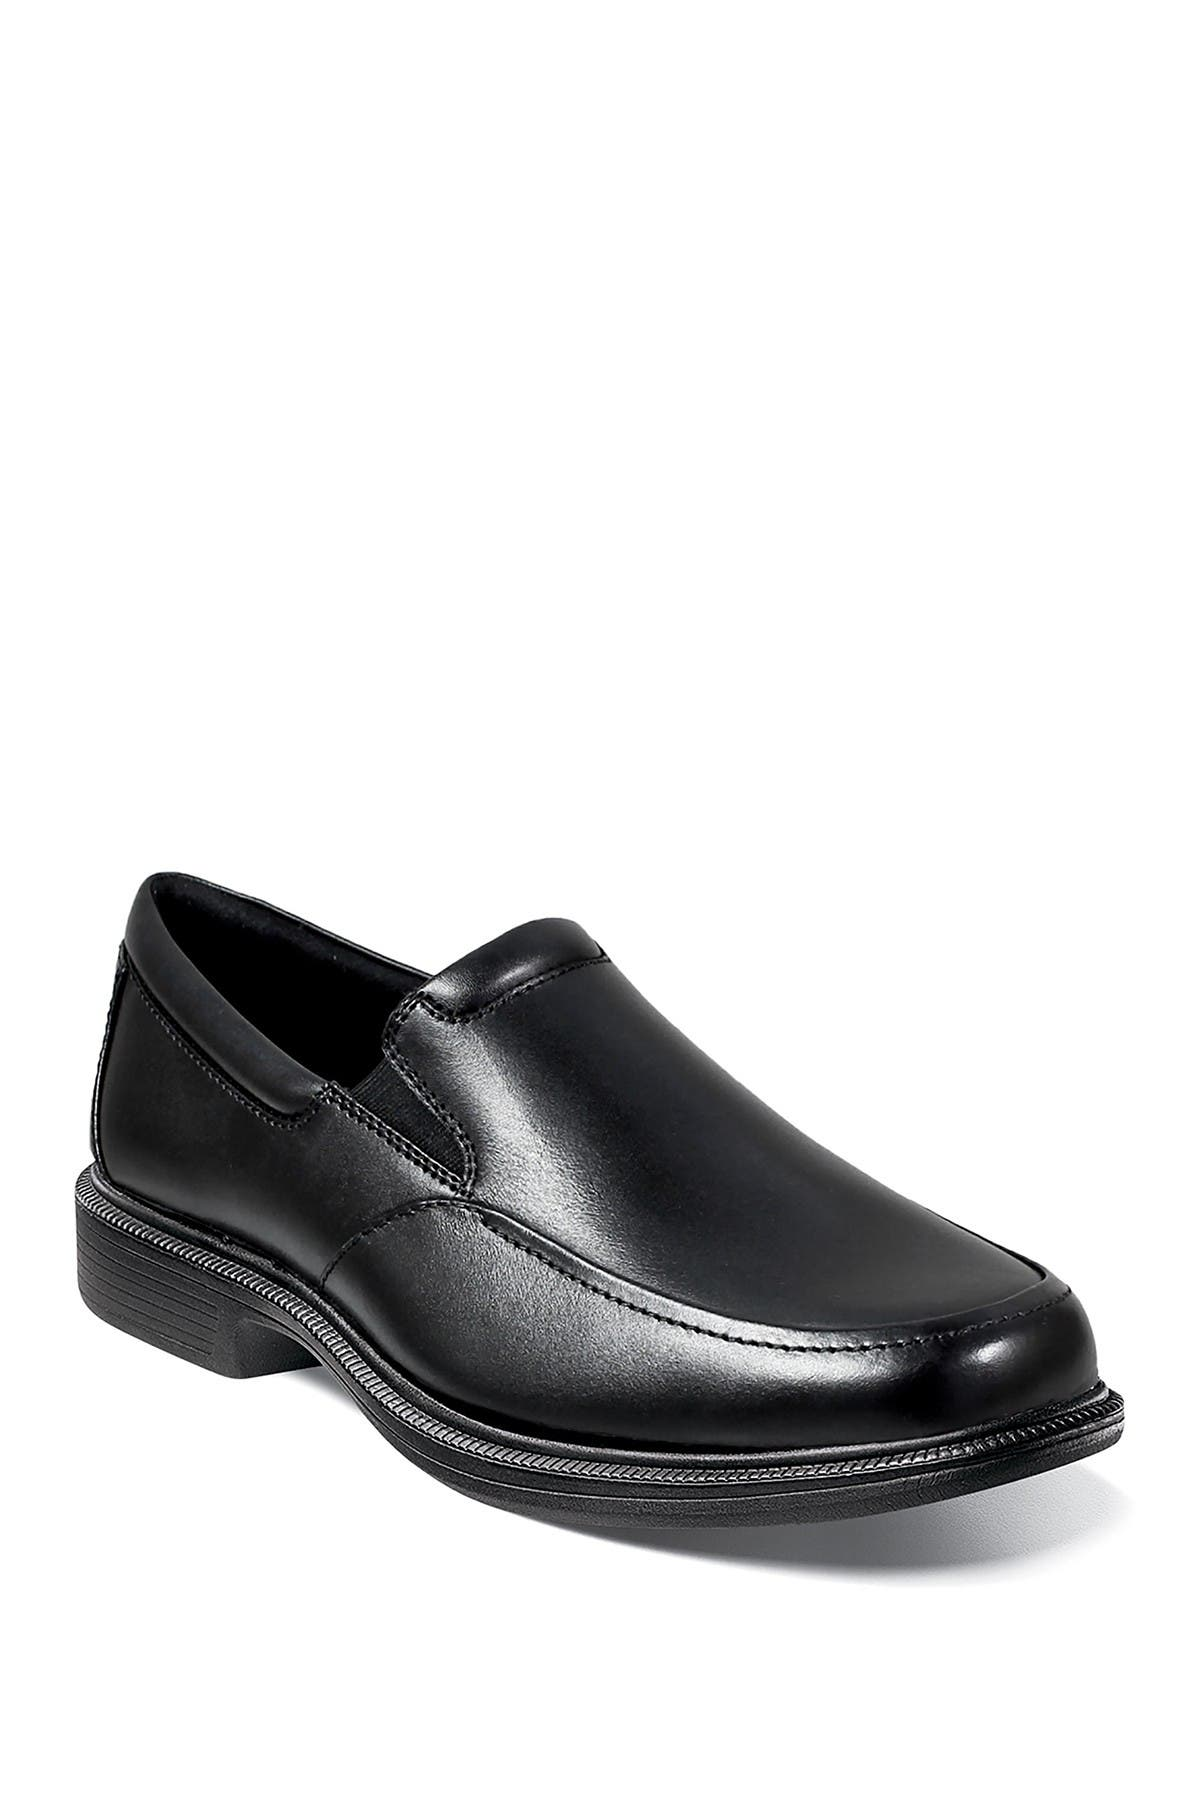 Image of NUNN BUSH Lamont Moc Toe Slip-On Loafer - Wide Width Available